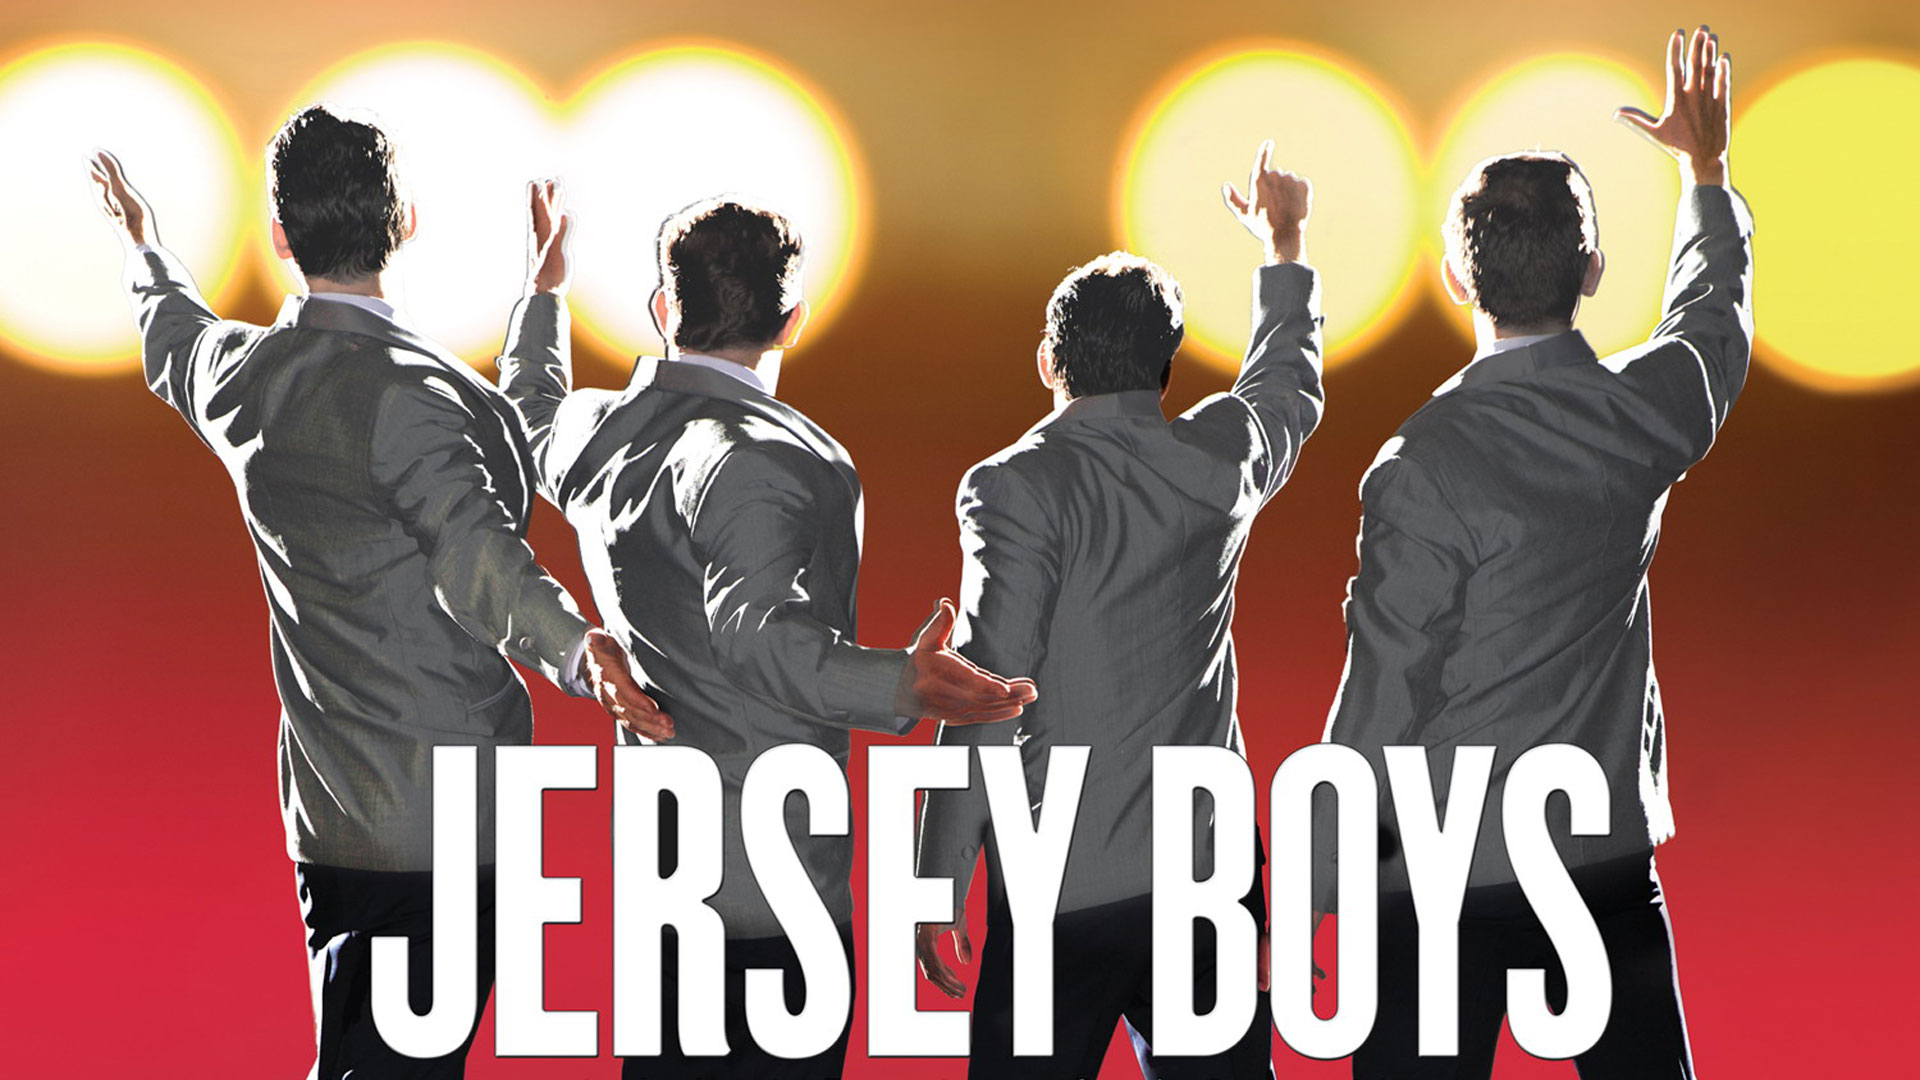 Simple Wallpaper High Quality Boy - jersey-boys_053047630  Perfect Image Reference_764895.jpg